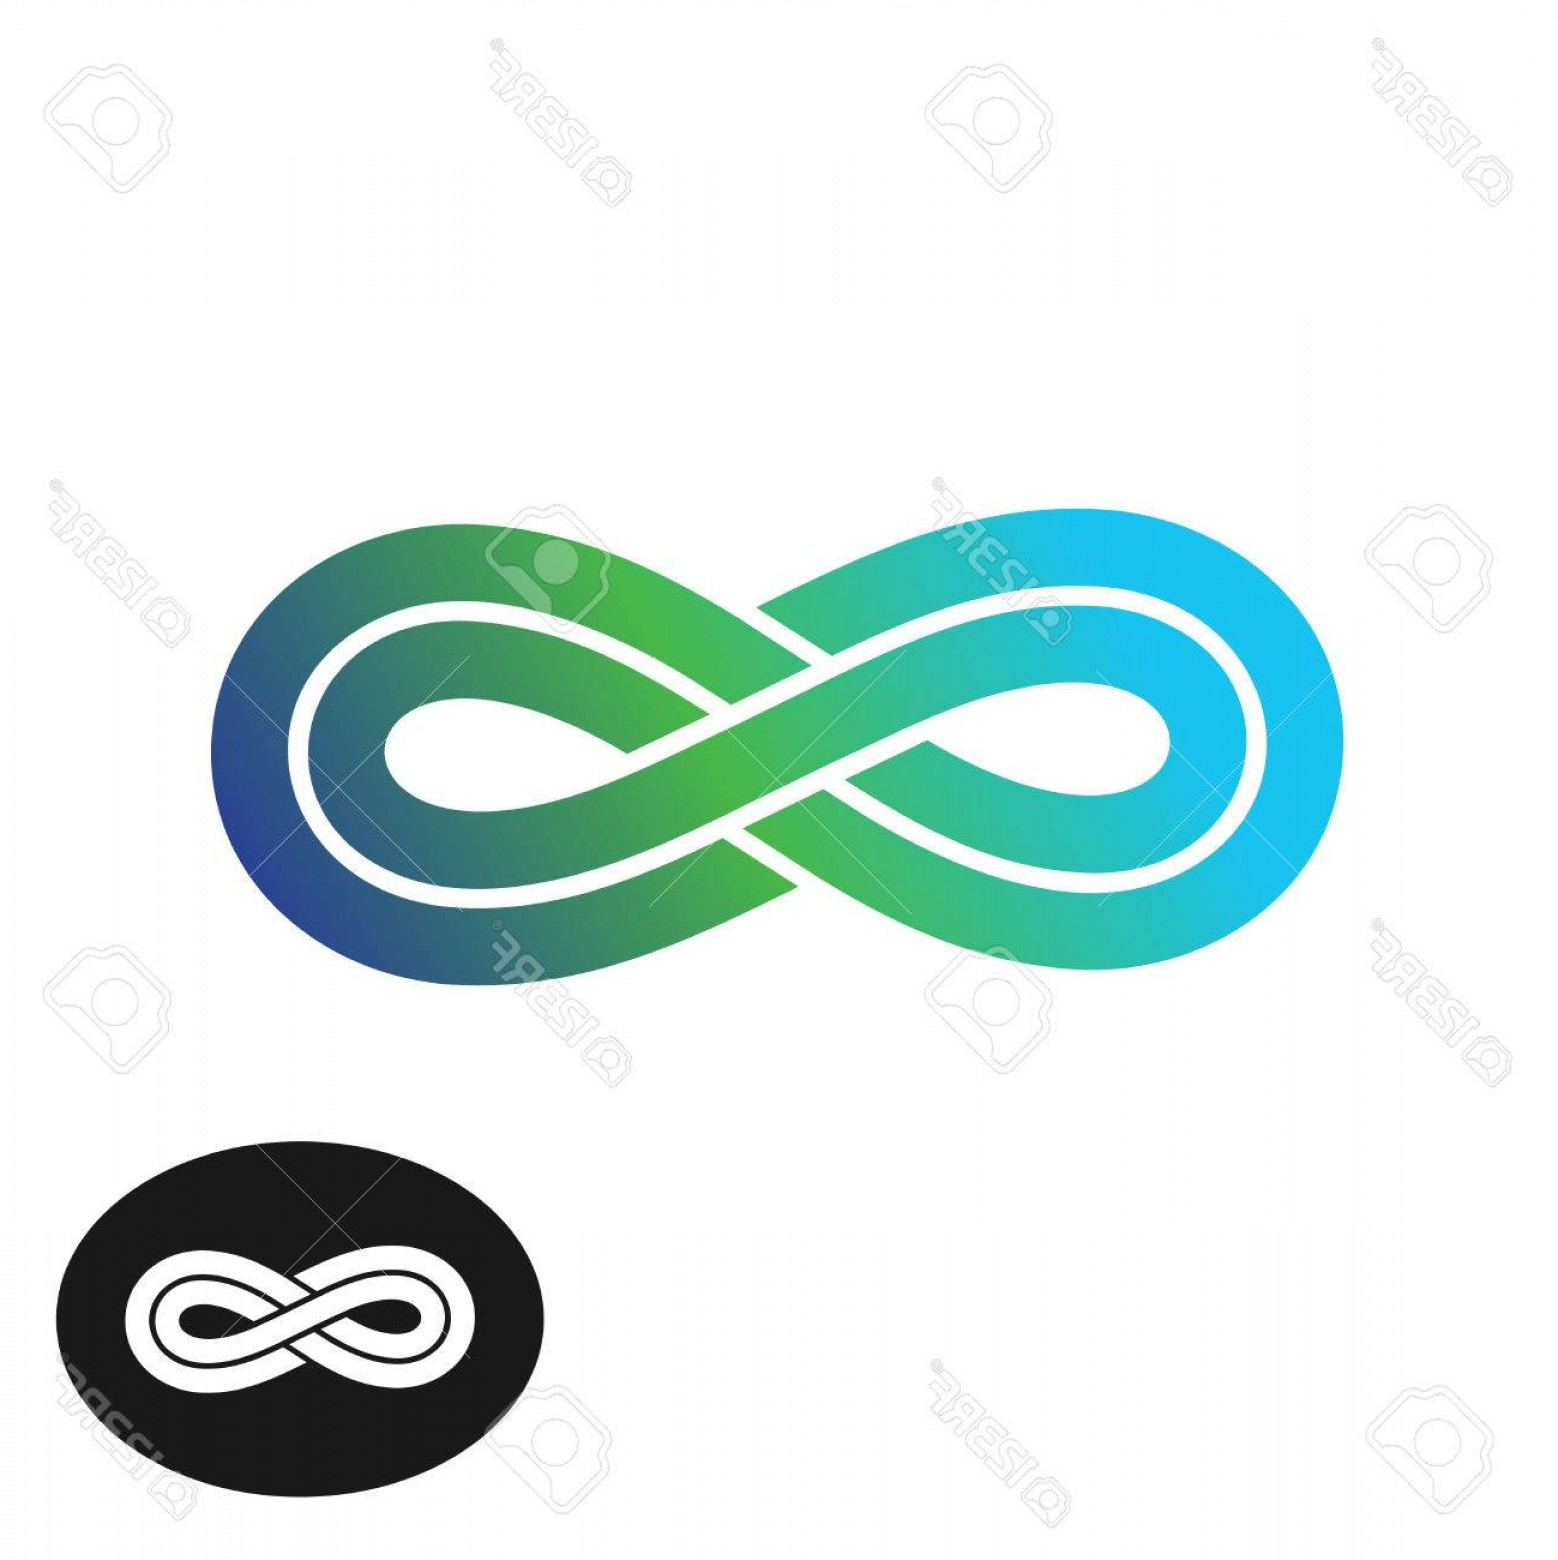 When Two Vectors Are Parallel: Photostock Vector Infinity Knot With Two Parallel Lines Logo Gradient Blue And Green Colors